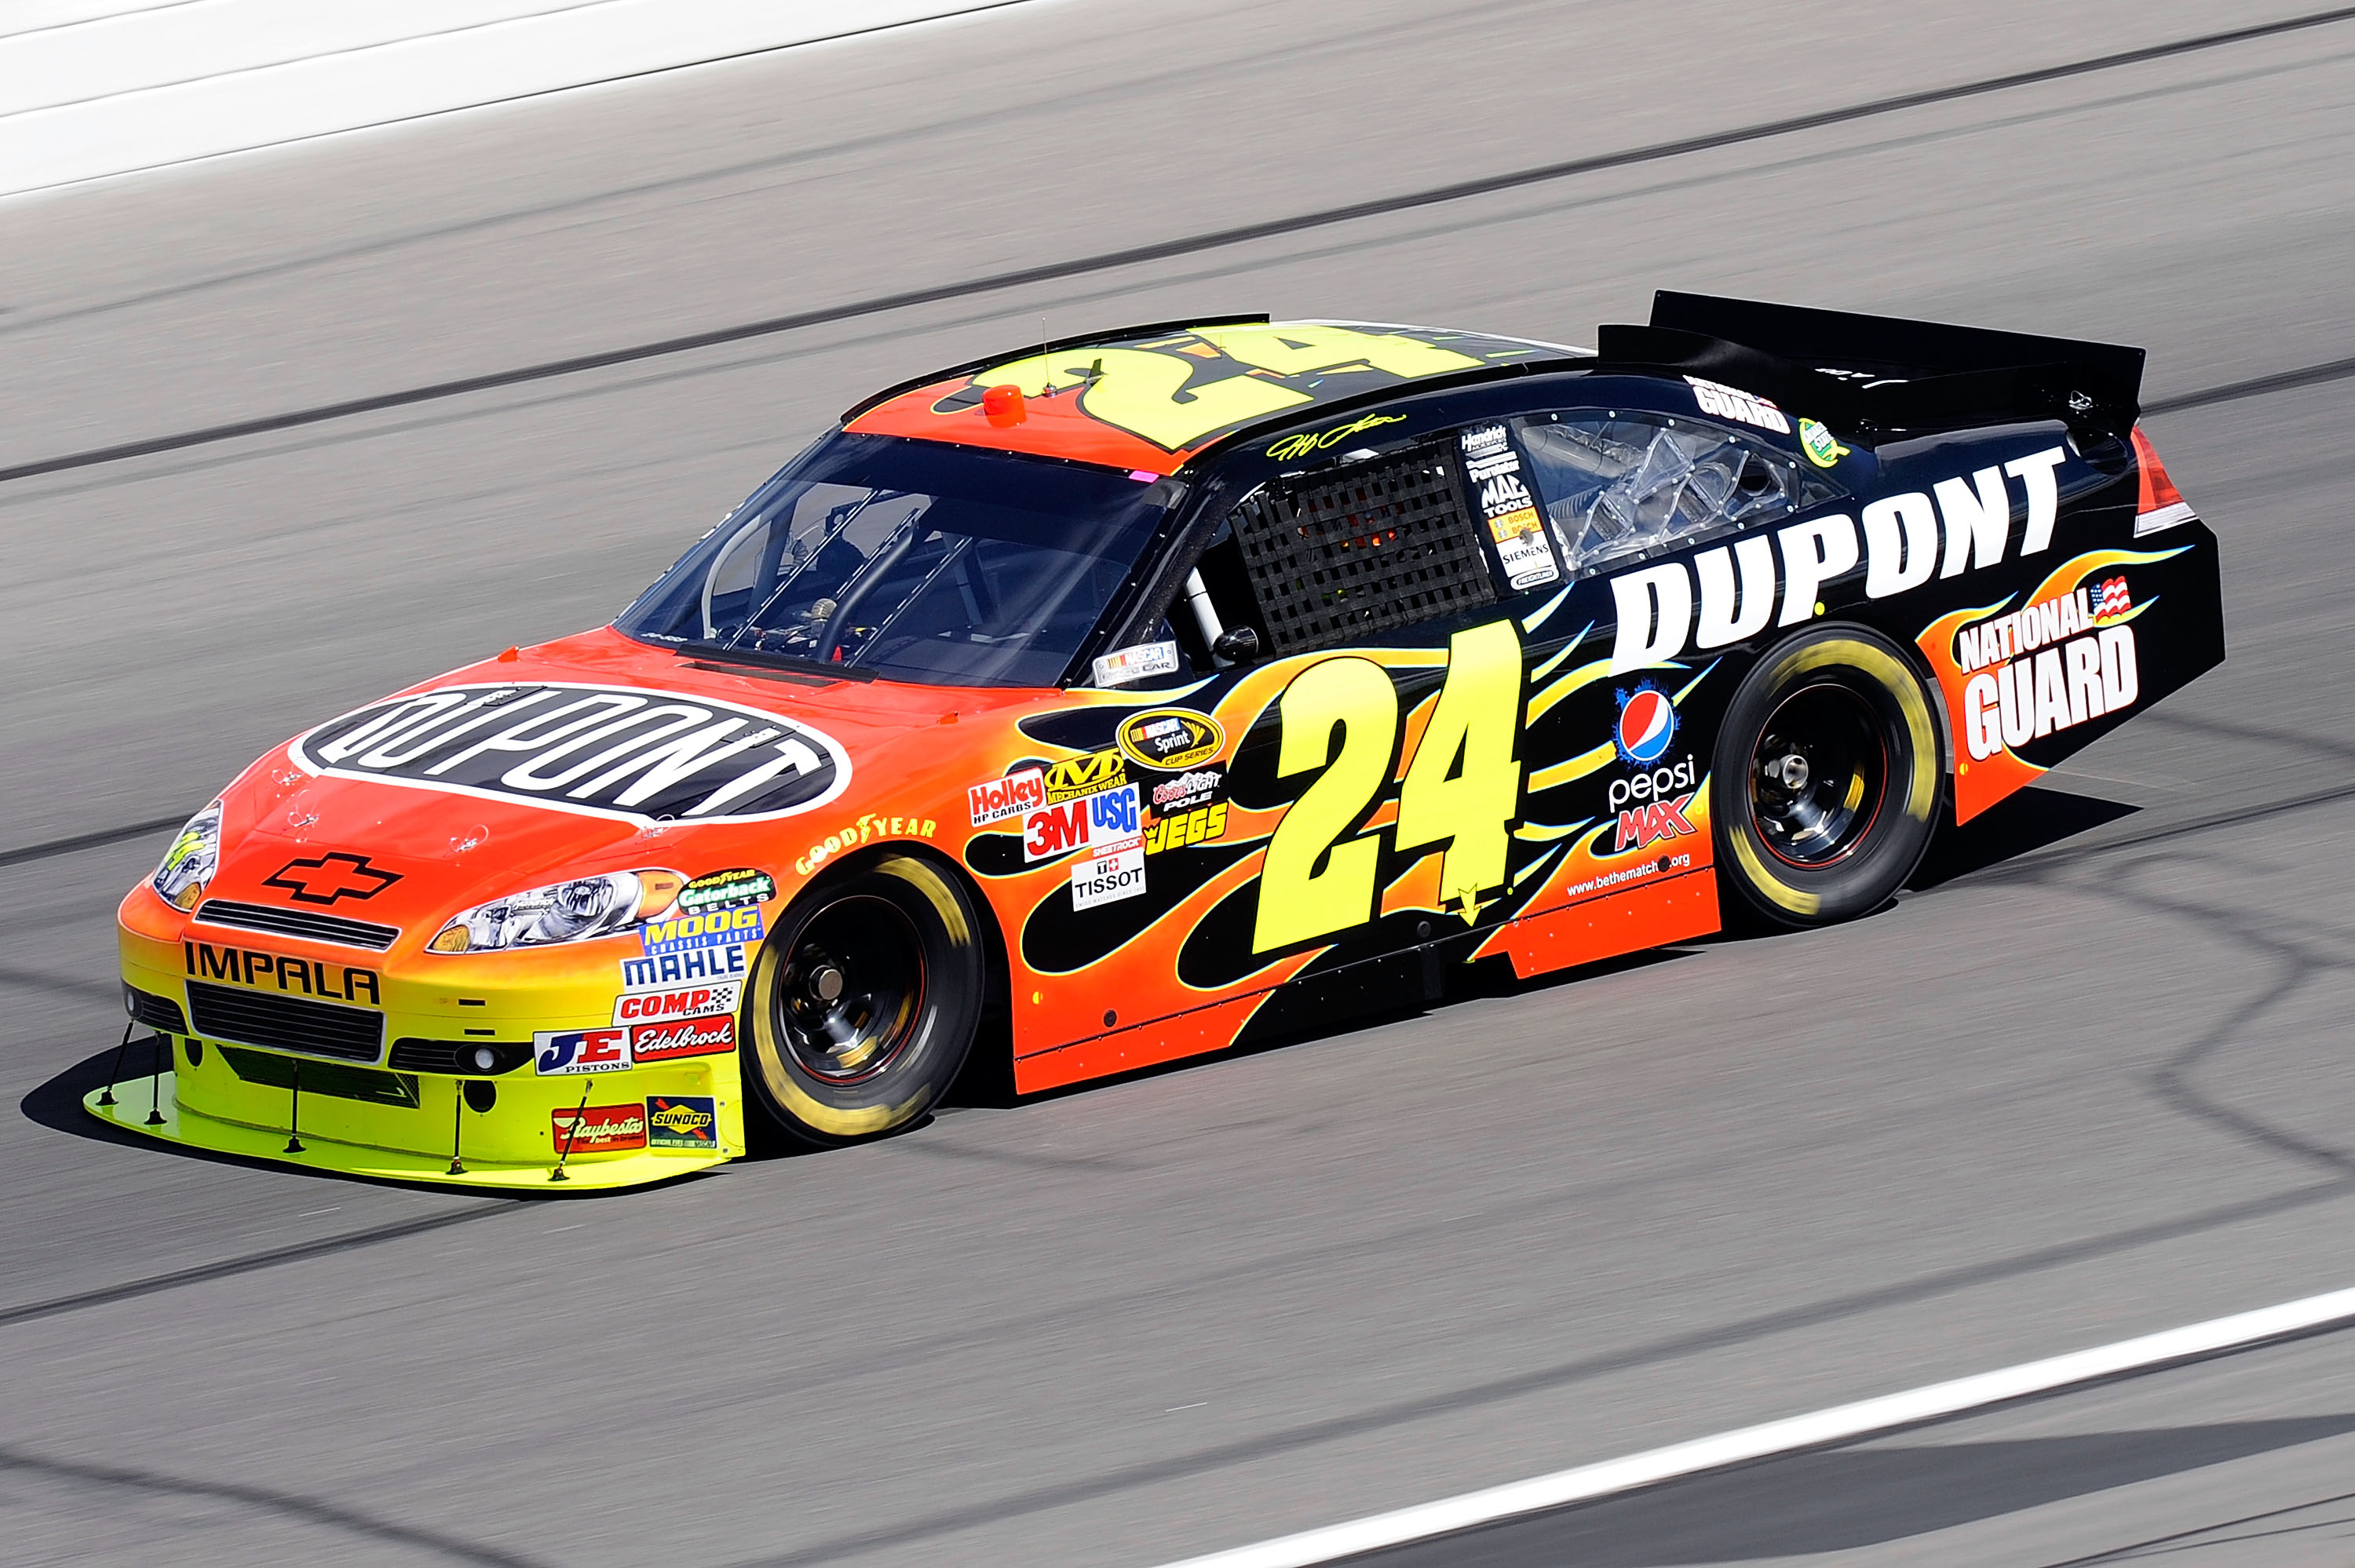 KANSAS CITY, KS - OCTOBER 02: Jeff Gordon, driver of the #24 DuPont Chevrolet, practices for the NASCAR Sprint Cup Series Price Chopper 400 on October 2, 2010 in Kansas City, Kansas.  (Photo by John Harrelson/Getty Images)